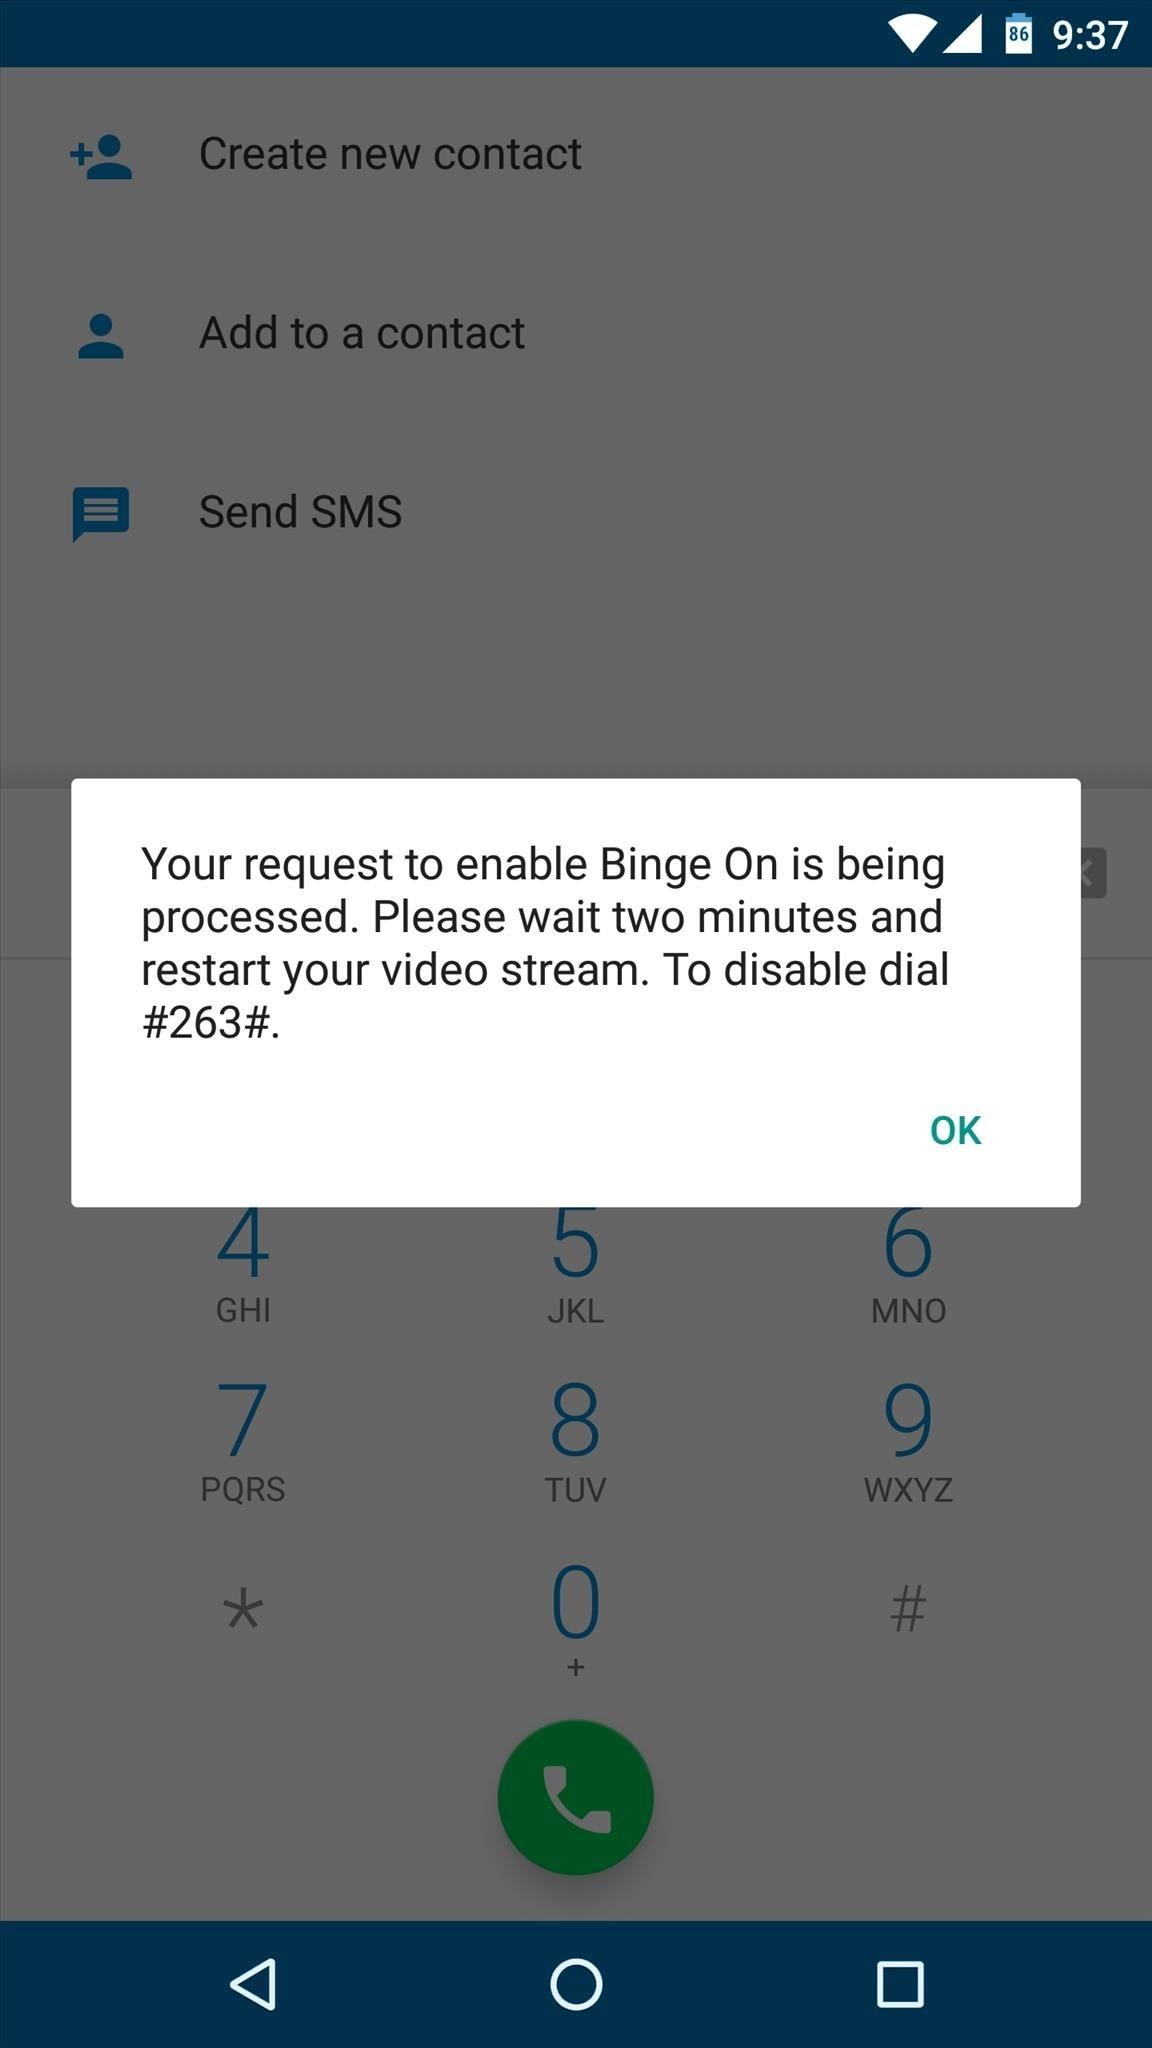 How to Disable T-Mobile's 'Binge on' for Better Quality Videos